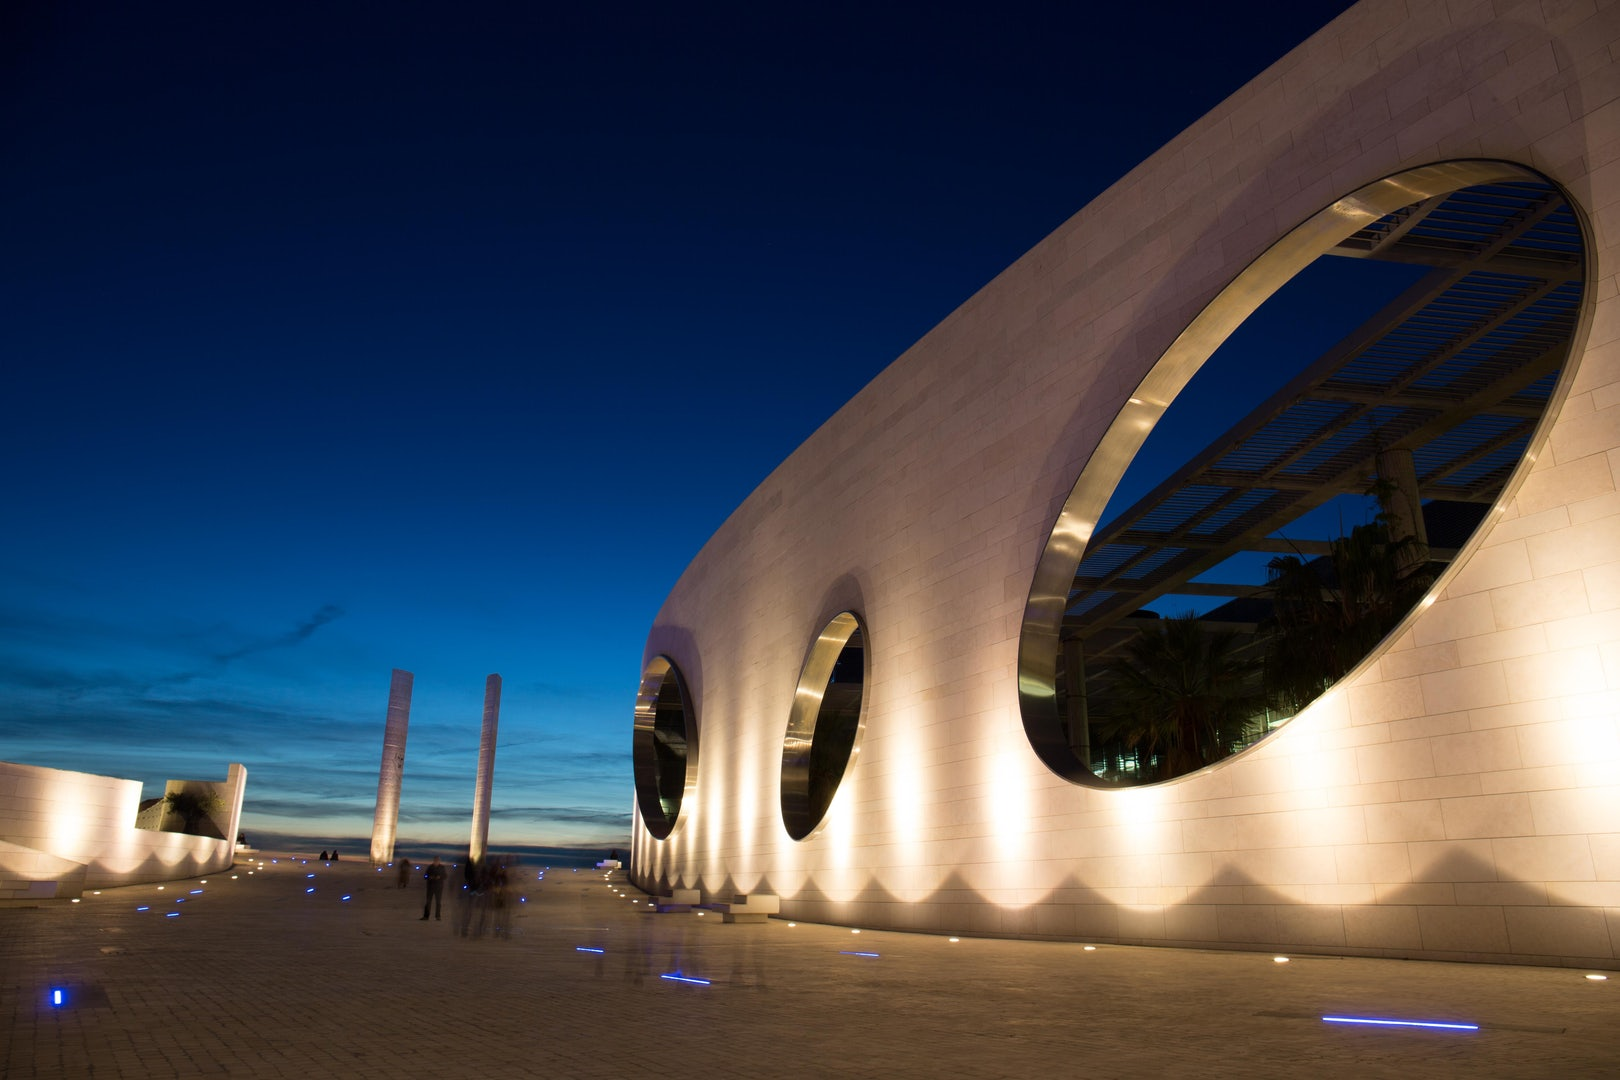 futuristic architecture at the Fundacao Champalimaud